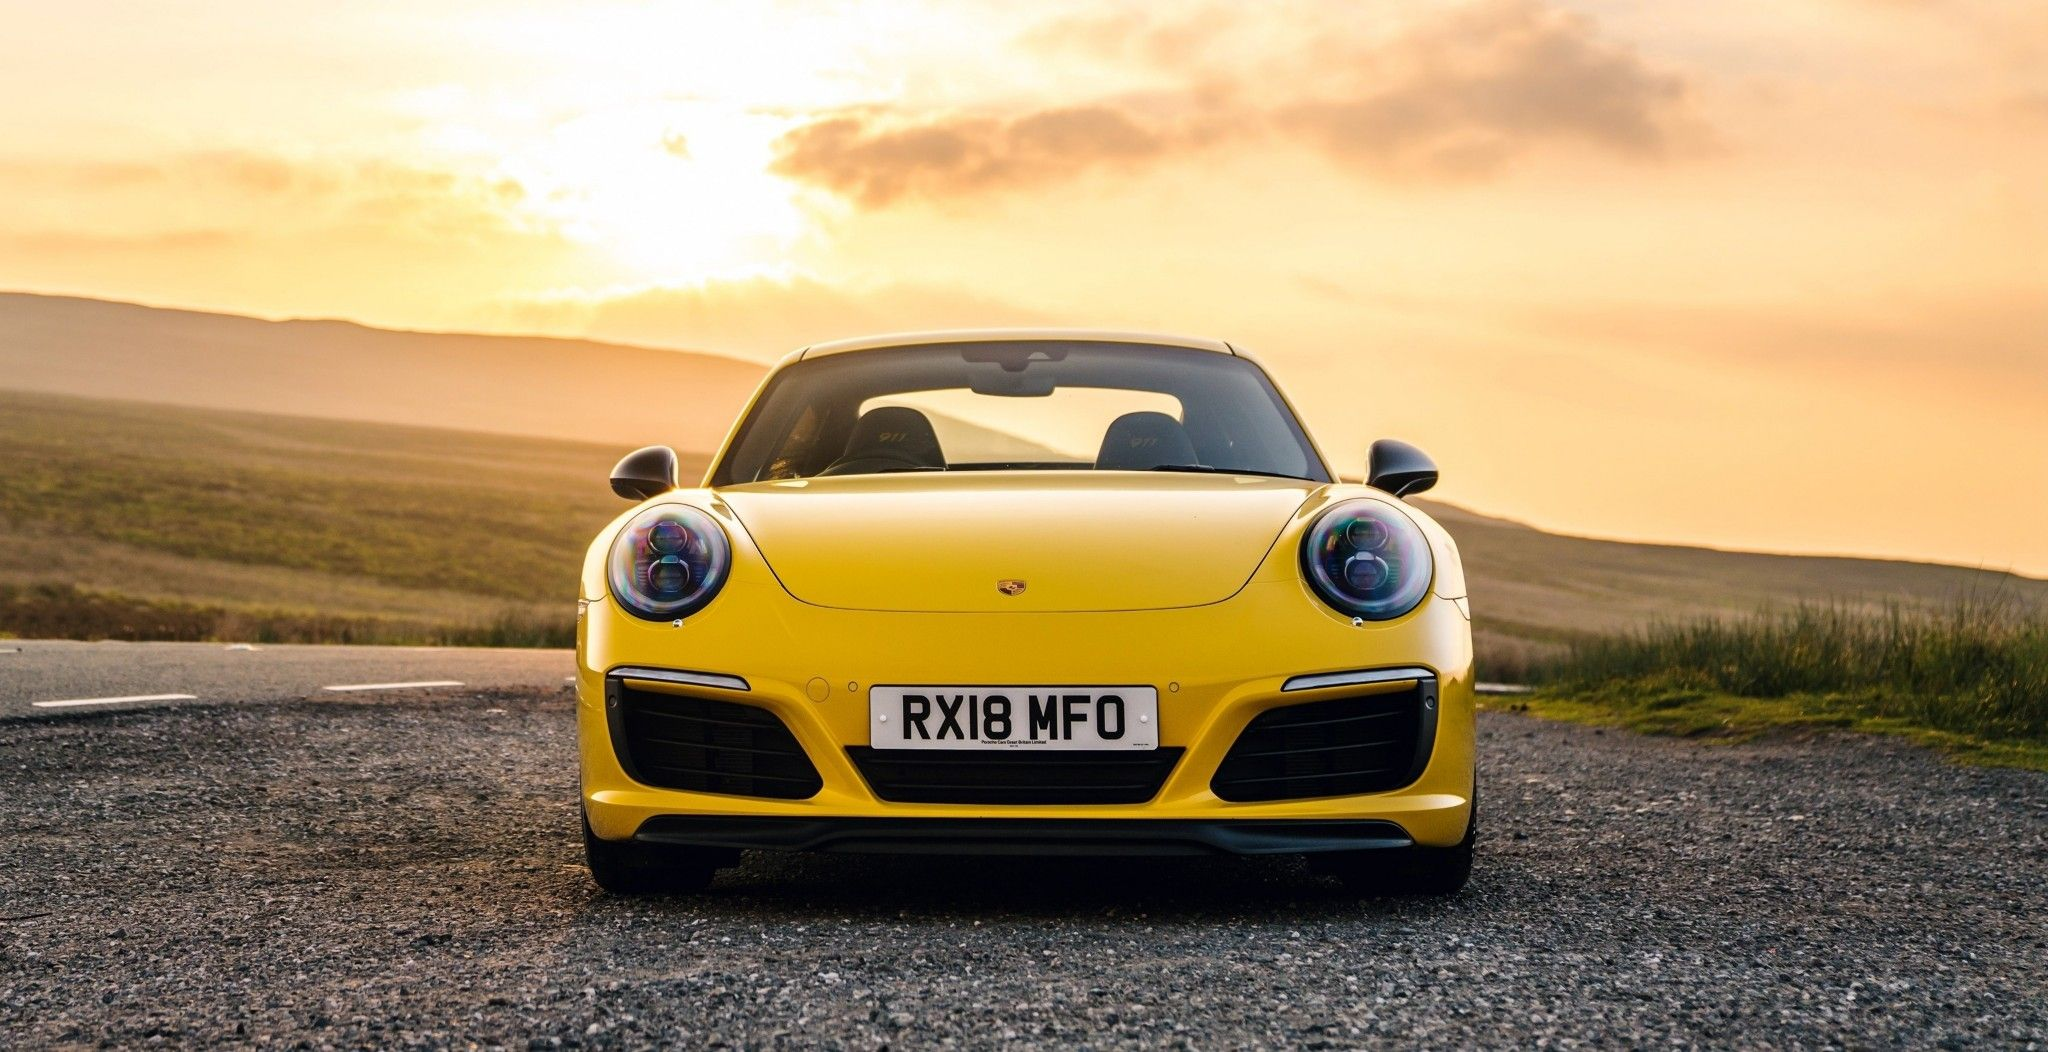 Pin By John Hassemer On Aa Wallpapers Sports Car Wallpaper Porsche 911 Carrera Car Wallpapers